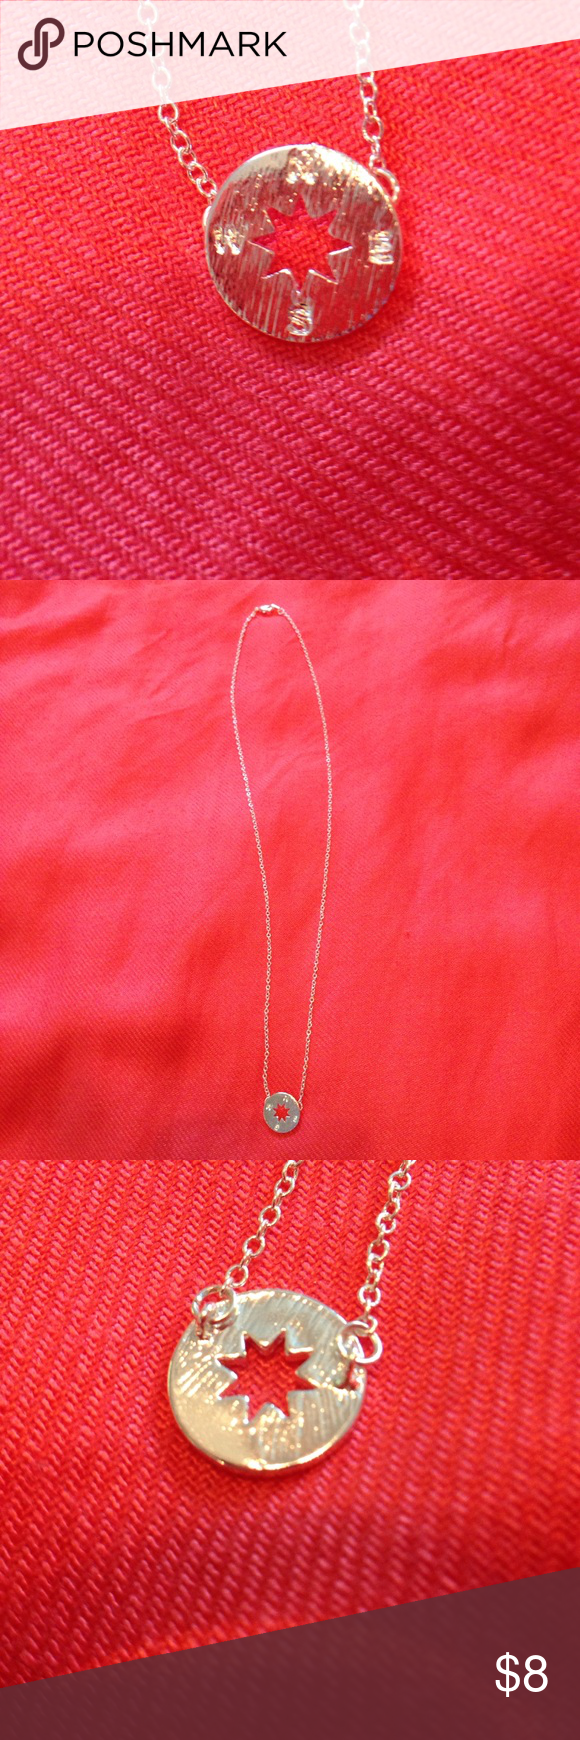 """Silver compass necklace Integrated necklace in brushed silver features the cardinal points of the compass and a starburst punched out of the middle. Chain is 19"""" long. Wear this to remind yourself of which direction you need to head. Great for travel fans. Jewelry Necklaces"""